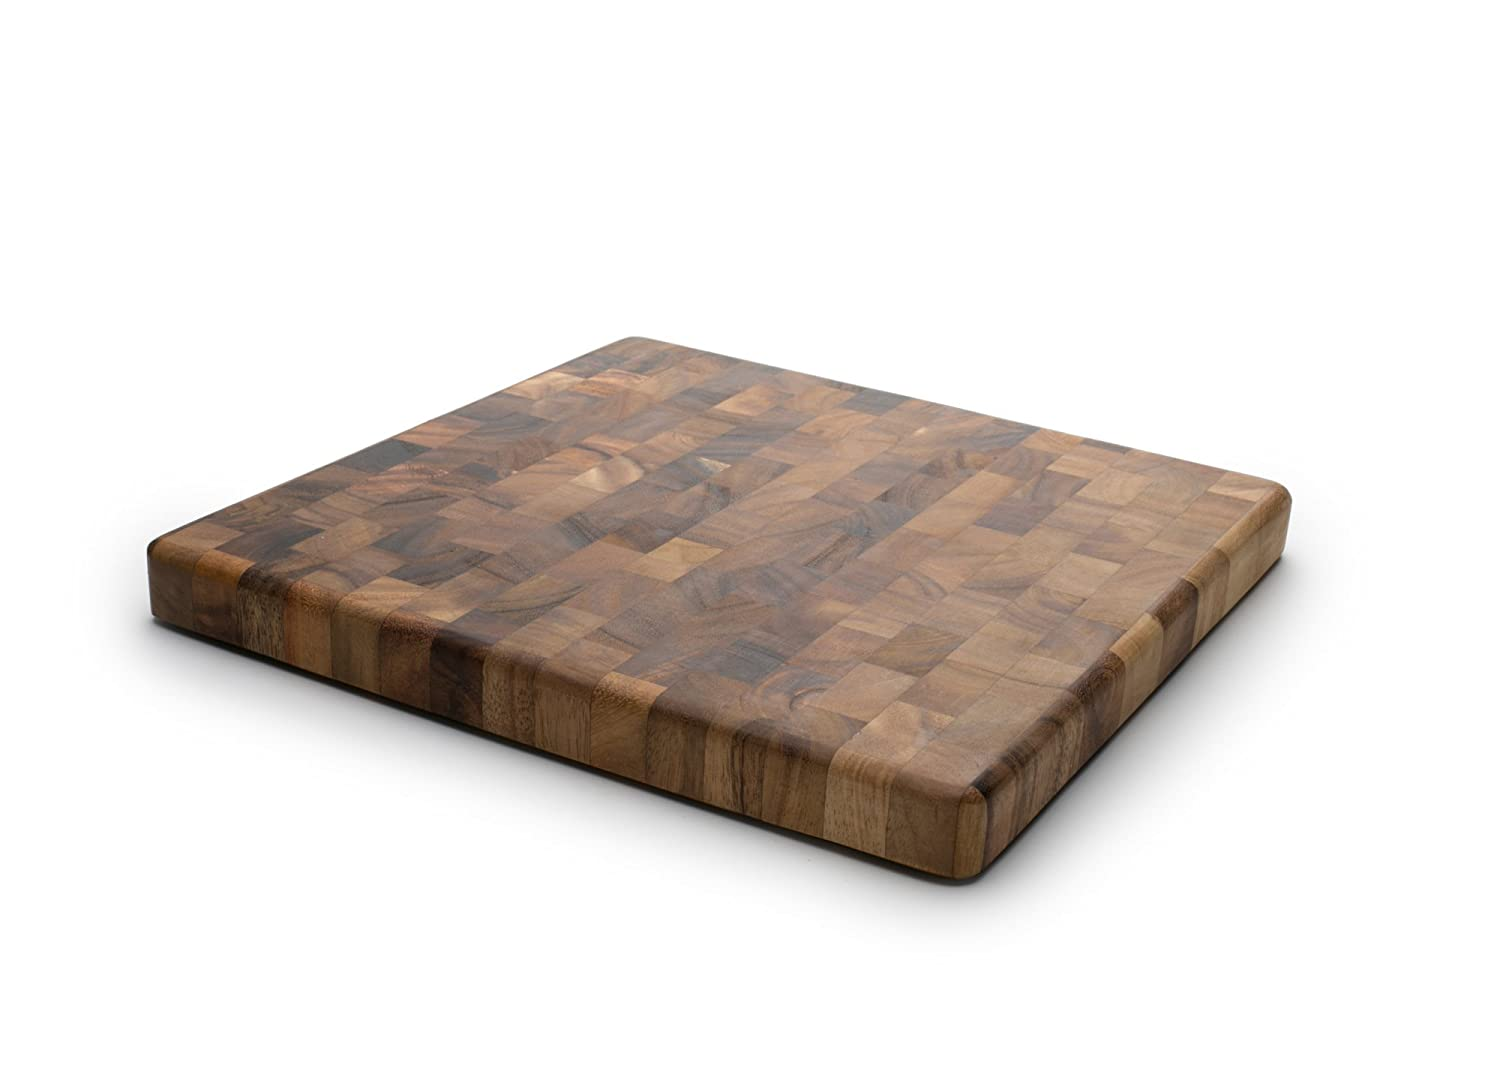 Ironwood Gourmet 28218 Acacia Square Board